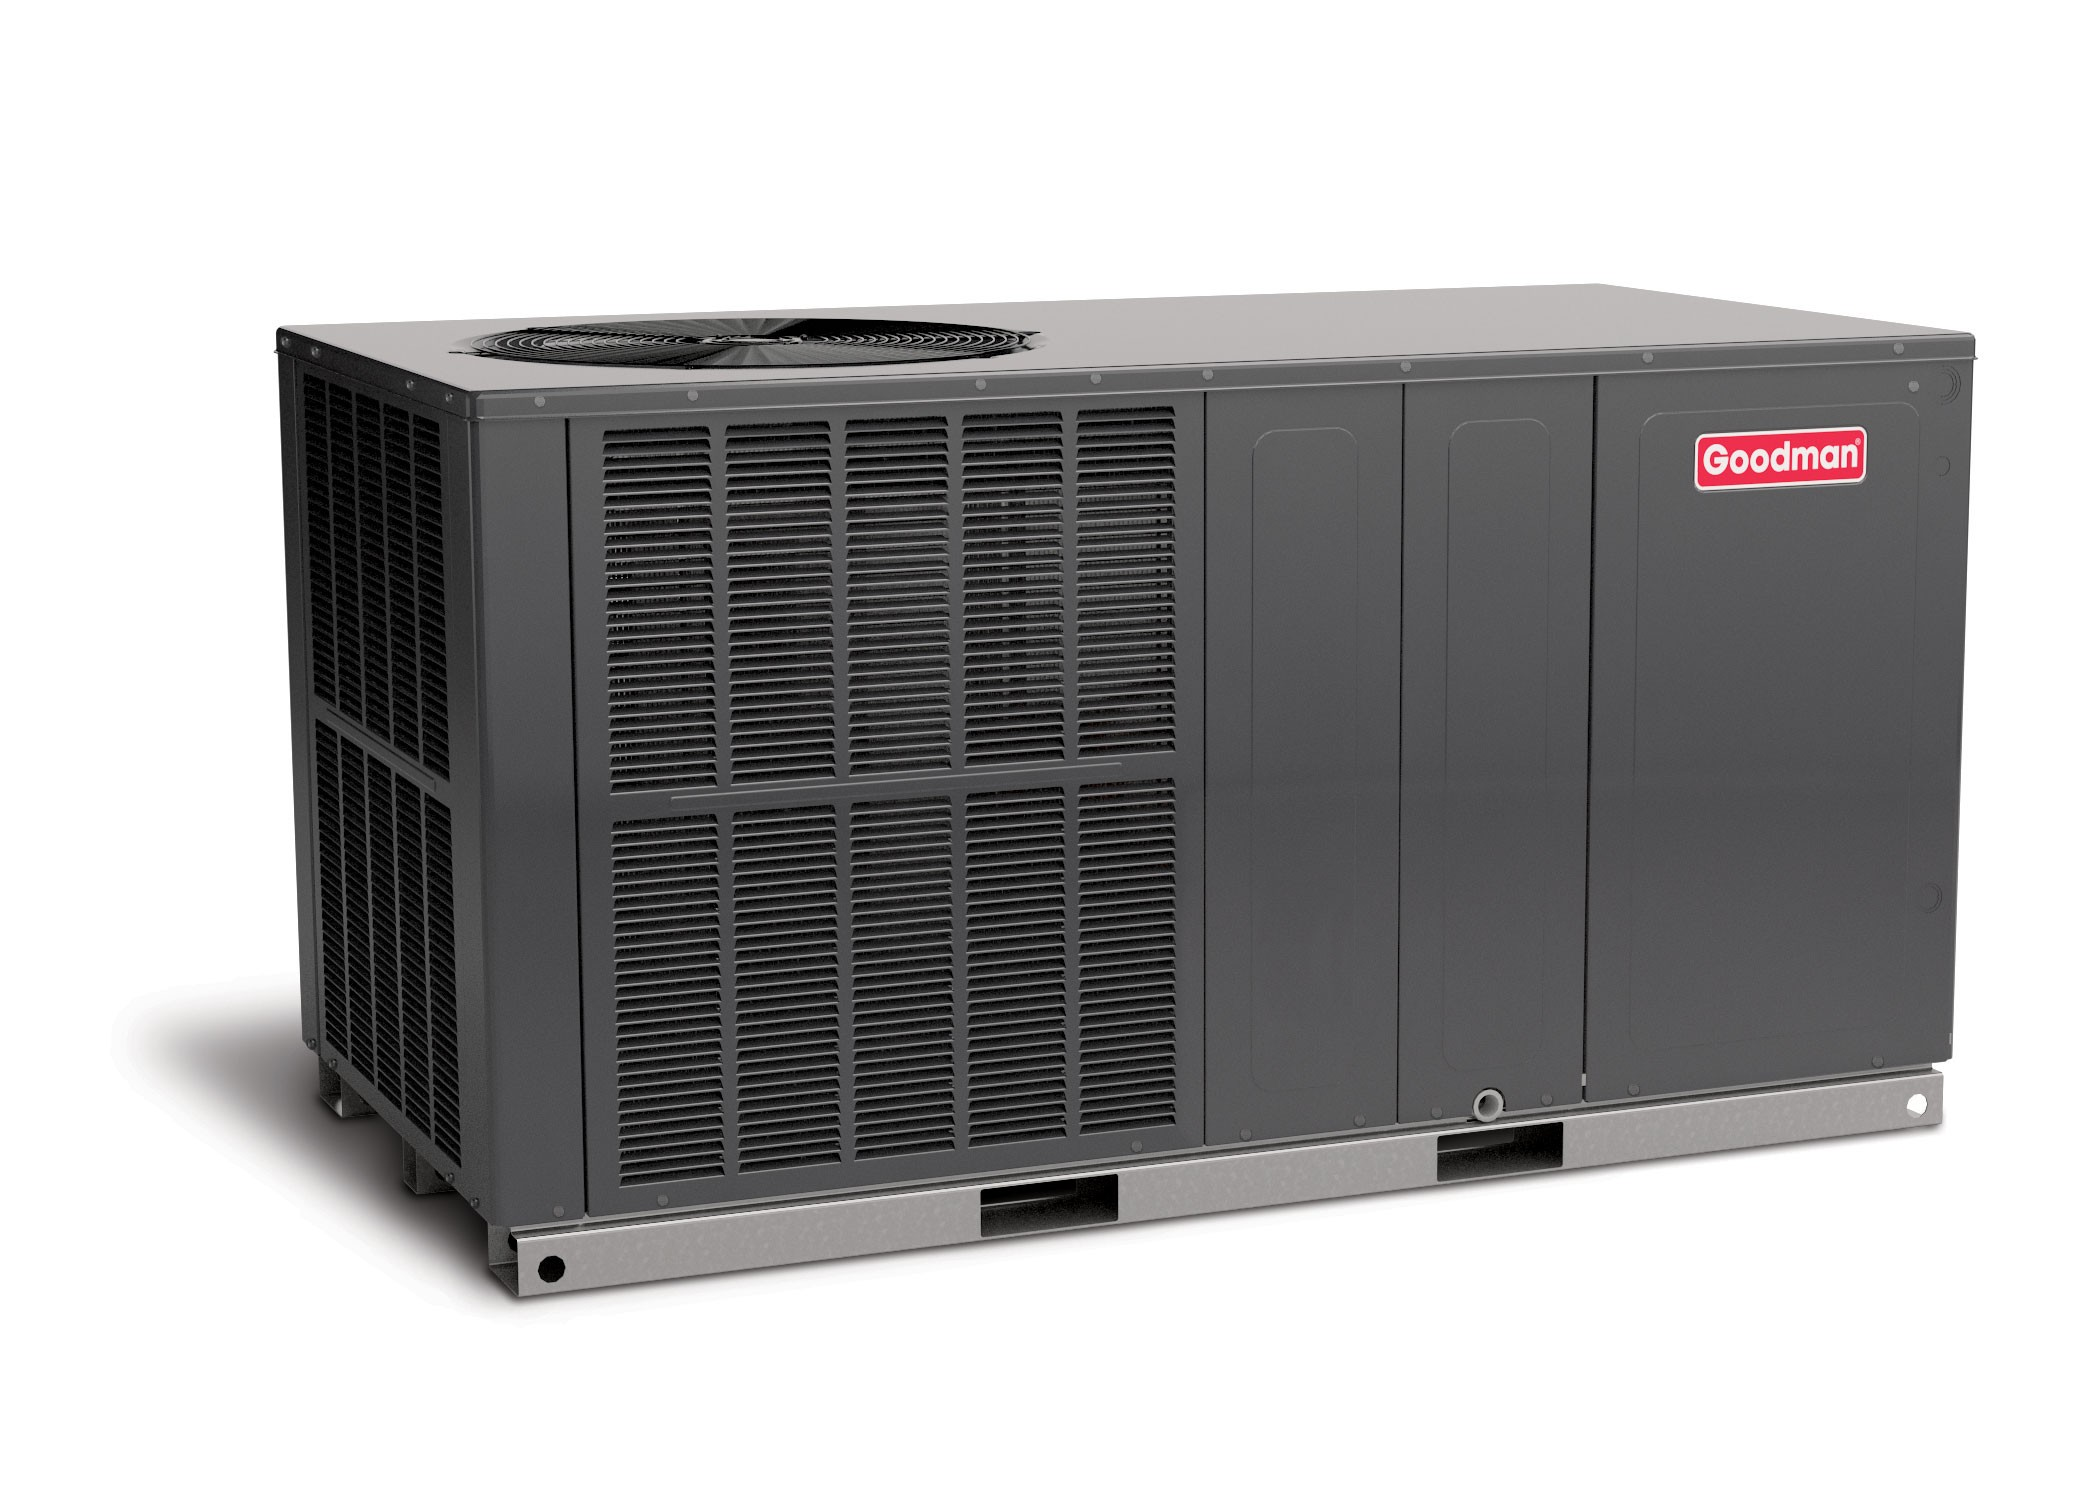 #BE0D29 3 Ton Goodman 14 SEER R 410A Air Conditioner Package Unit  Most Effective 3185 Goodman 3 Ton Package Unit pictures with 2100x1500 px on helpvideos.info - Air Conditioners, Air Coolers and more